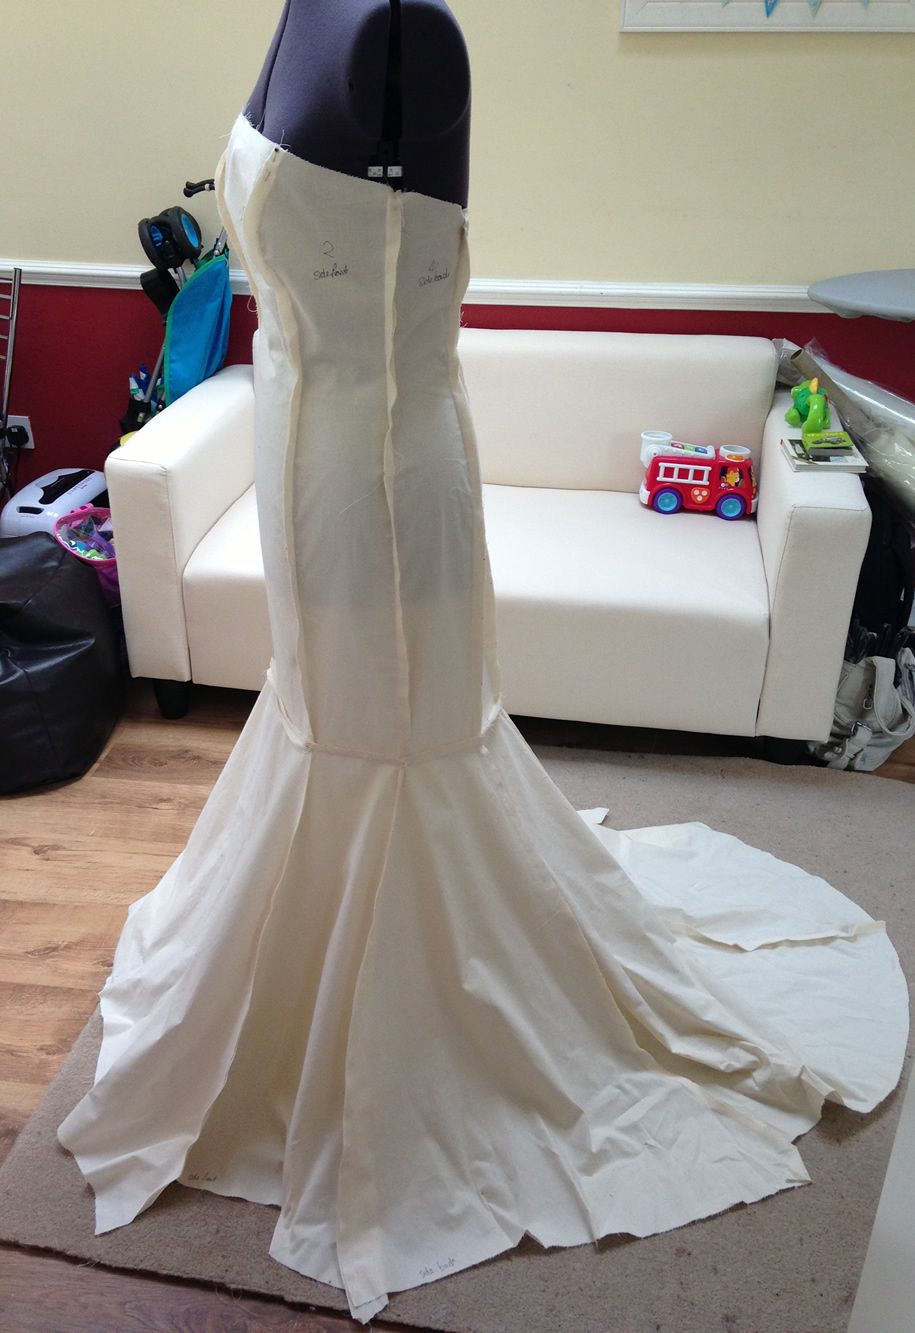 Design your own wedding dress near me  Fishtail wedding dress pattern  stage   Make Your Own Wedding